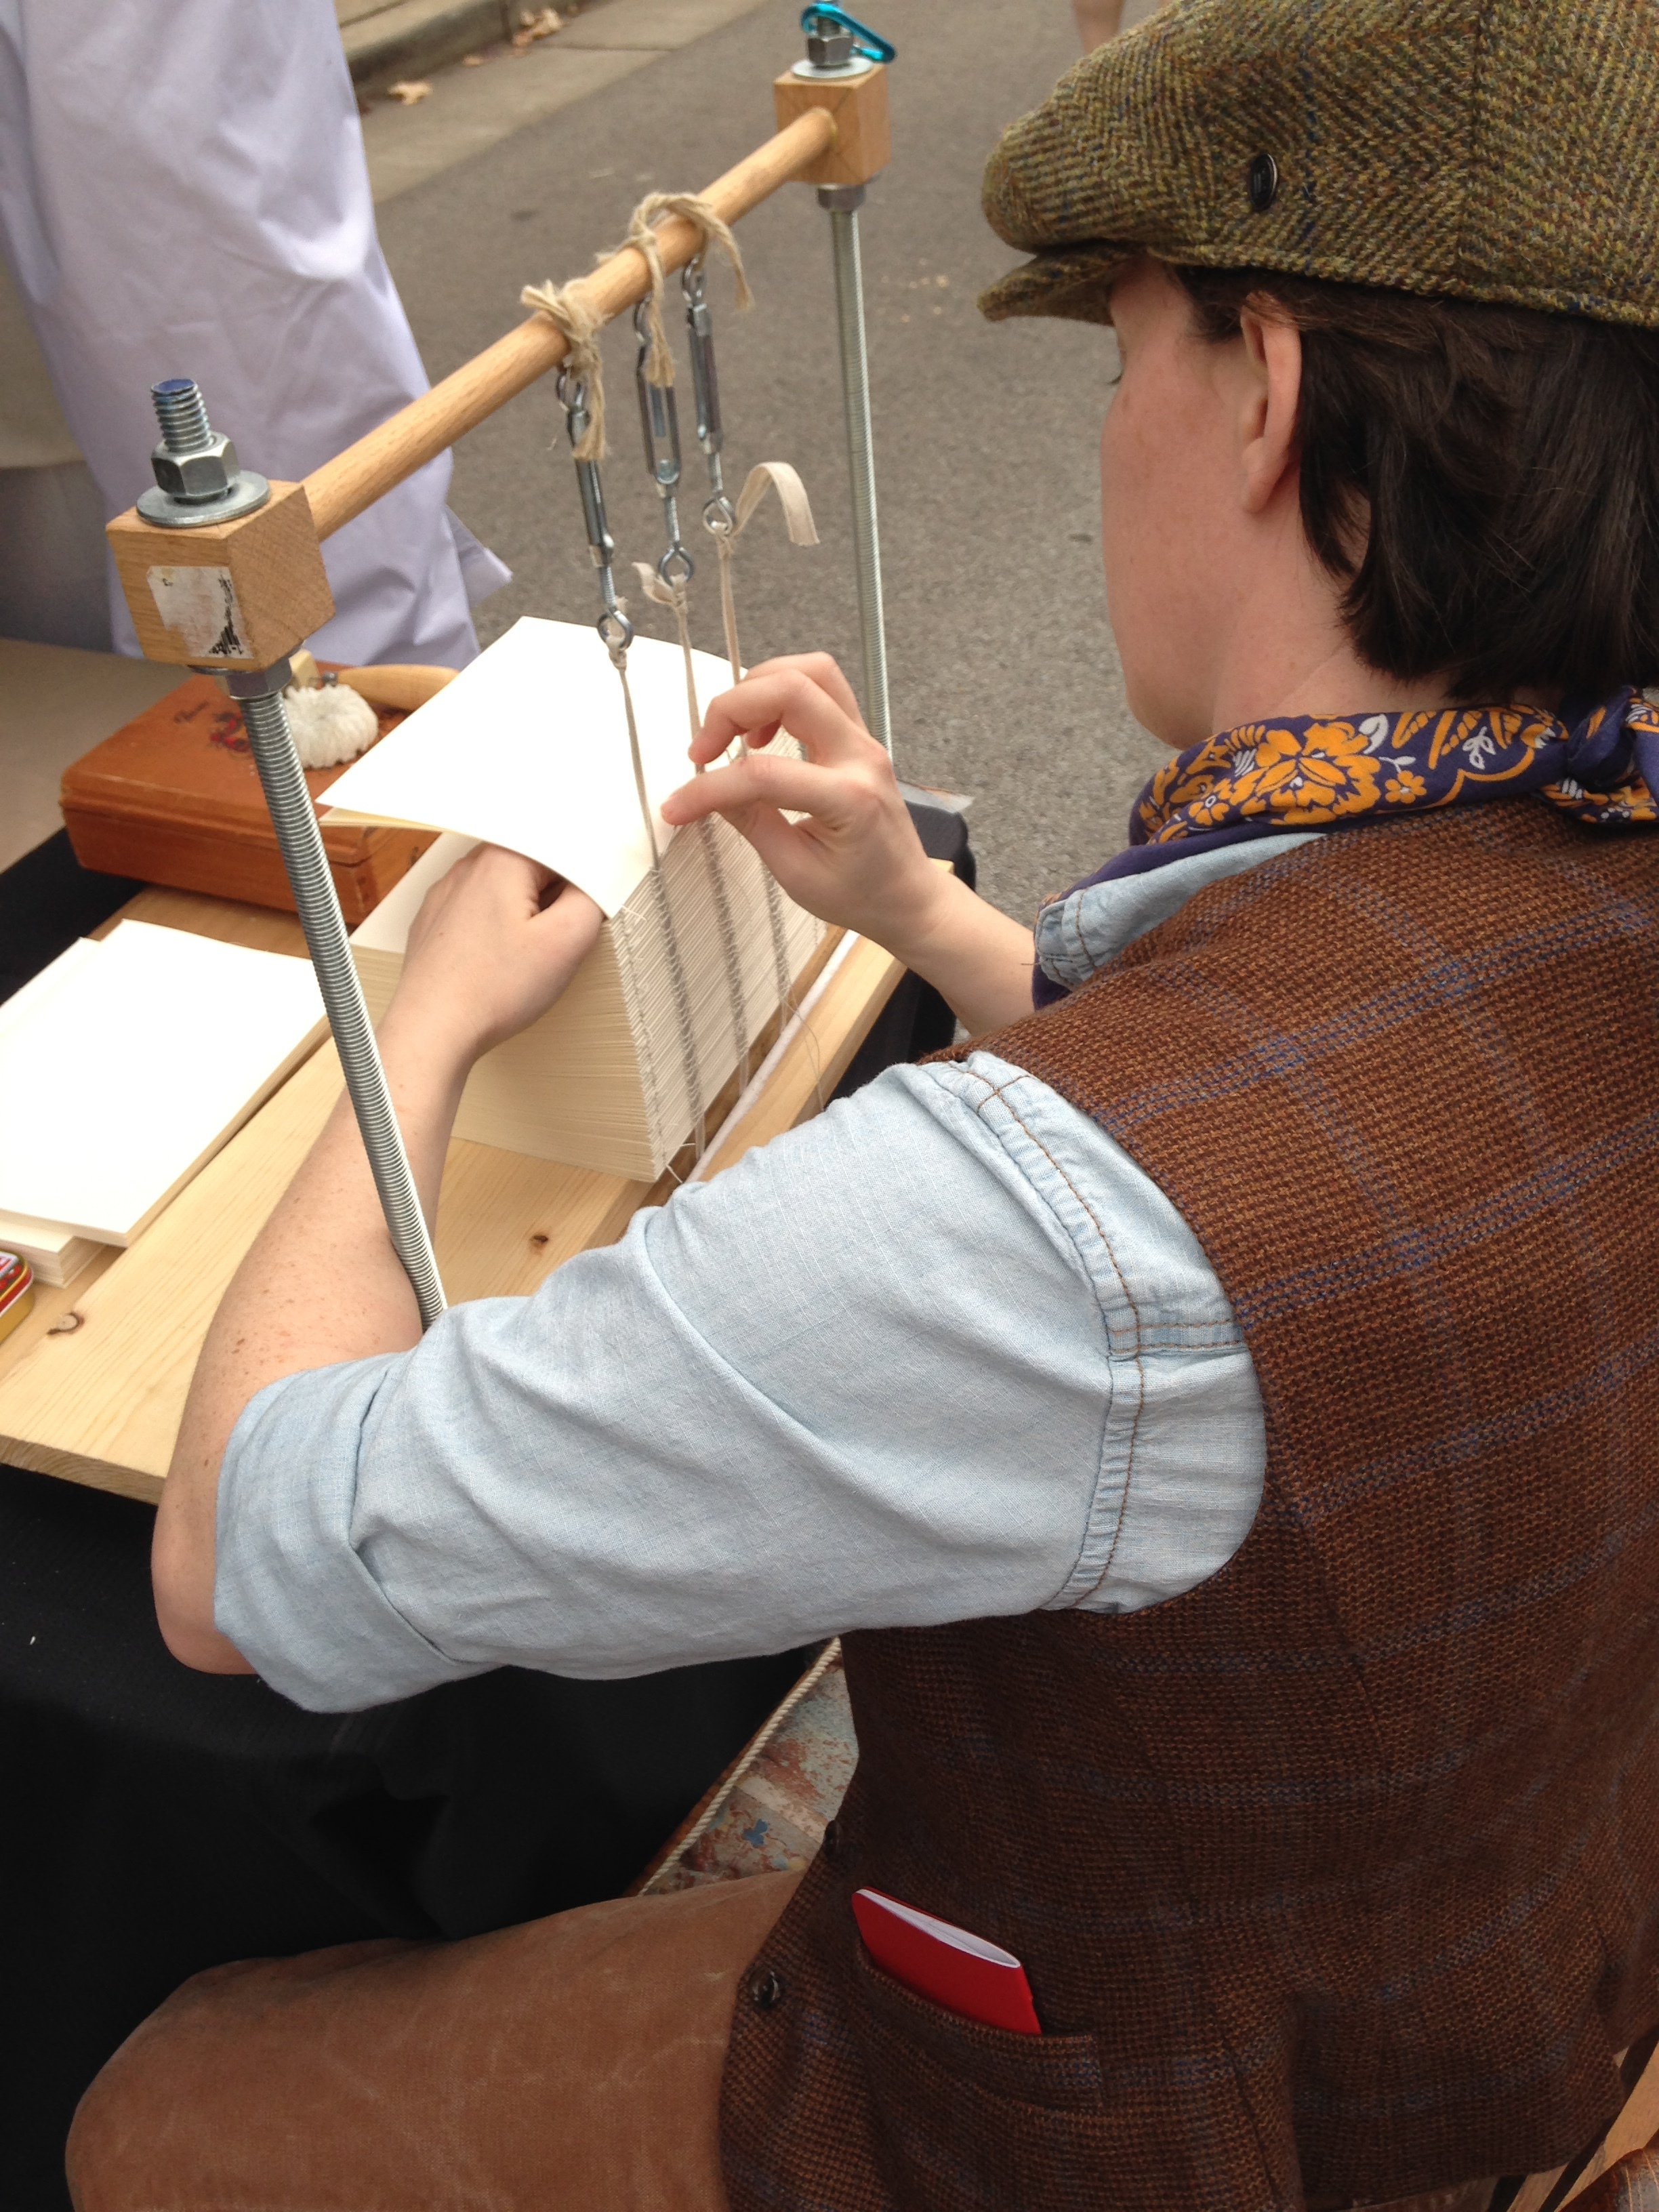 Me demonstrating the traditional method of sewing books on a frame as a Victorian era demonstrator for last winter's Dickens of a Christmas festival in Franklin, TN.